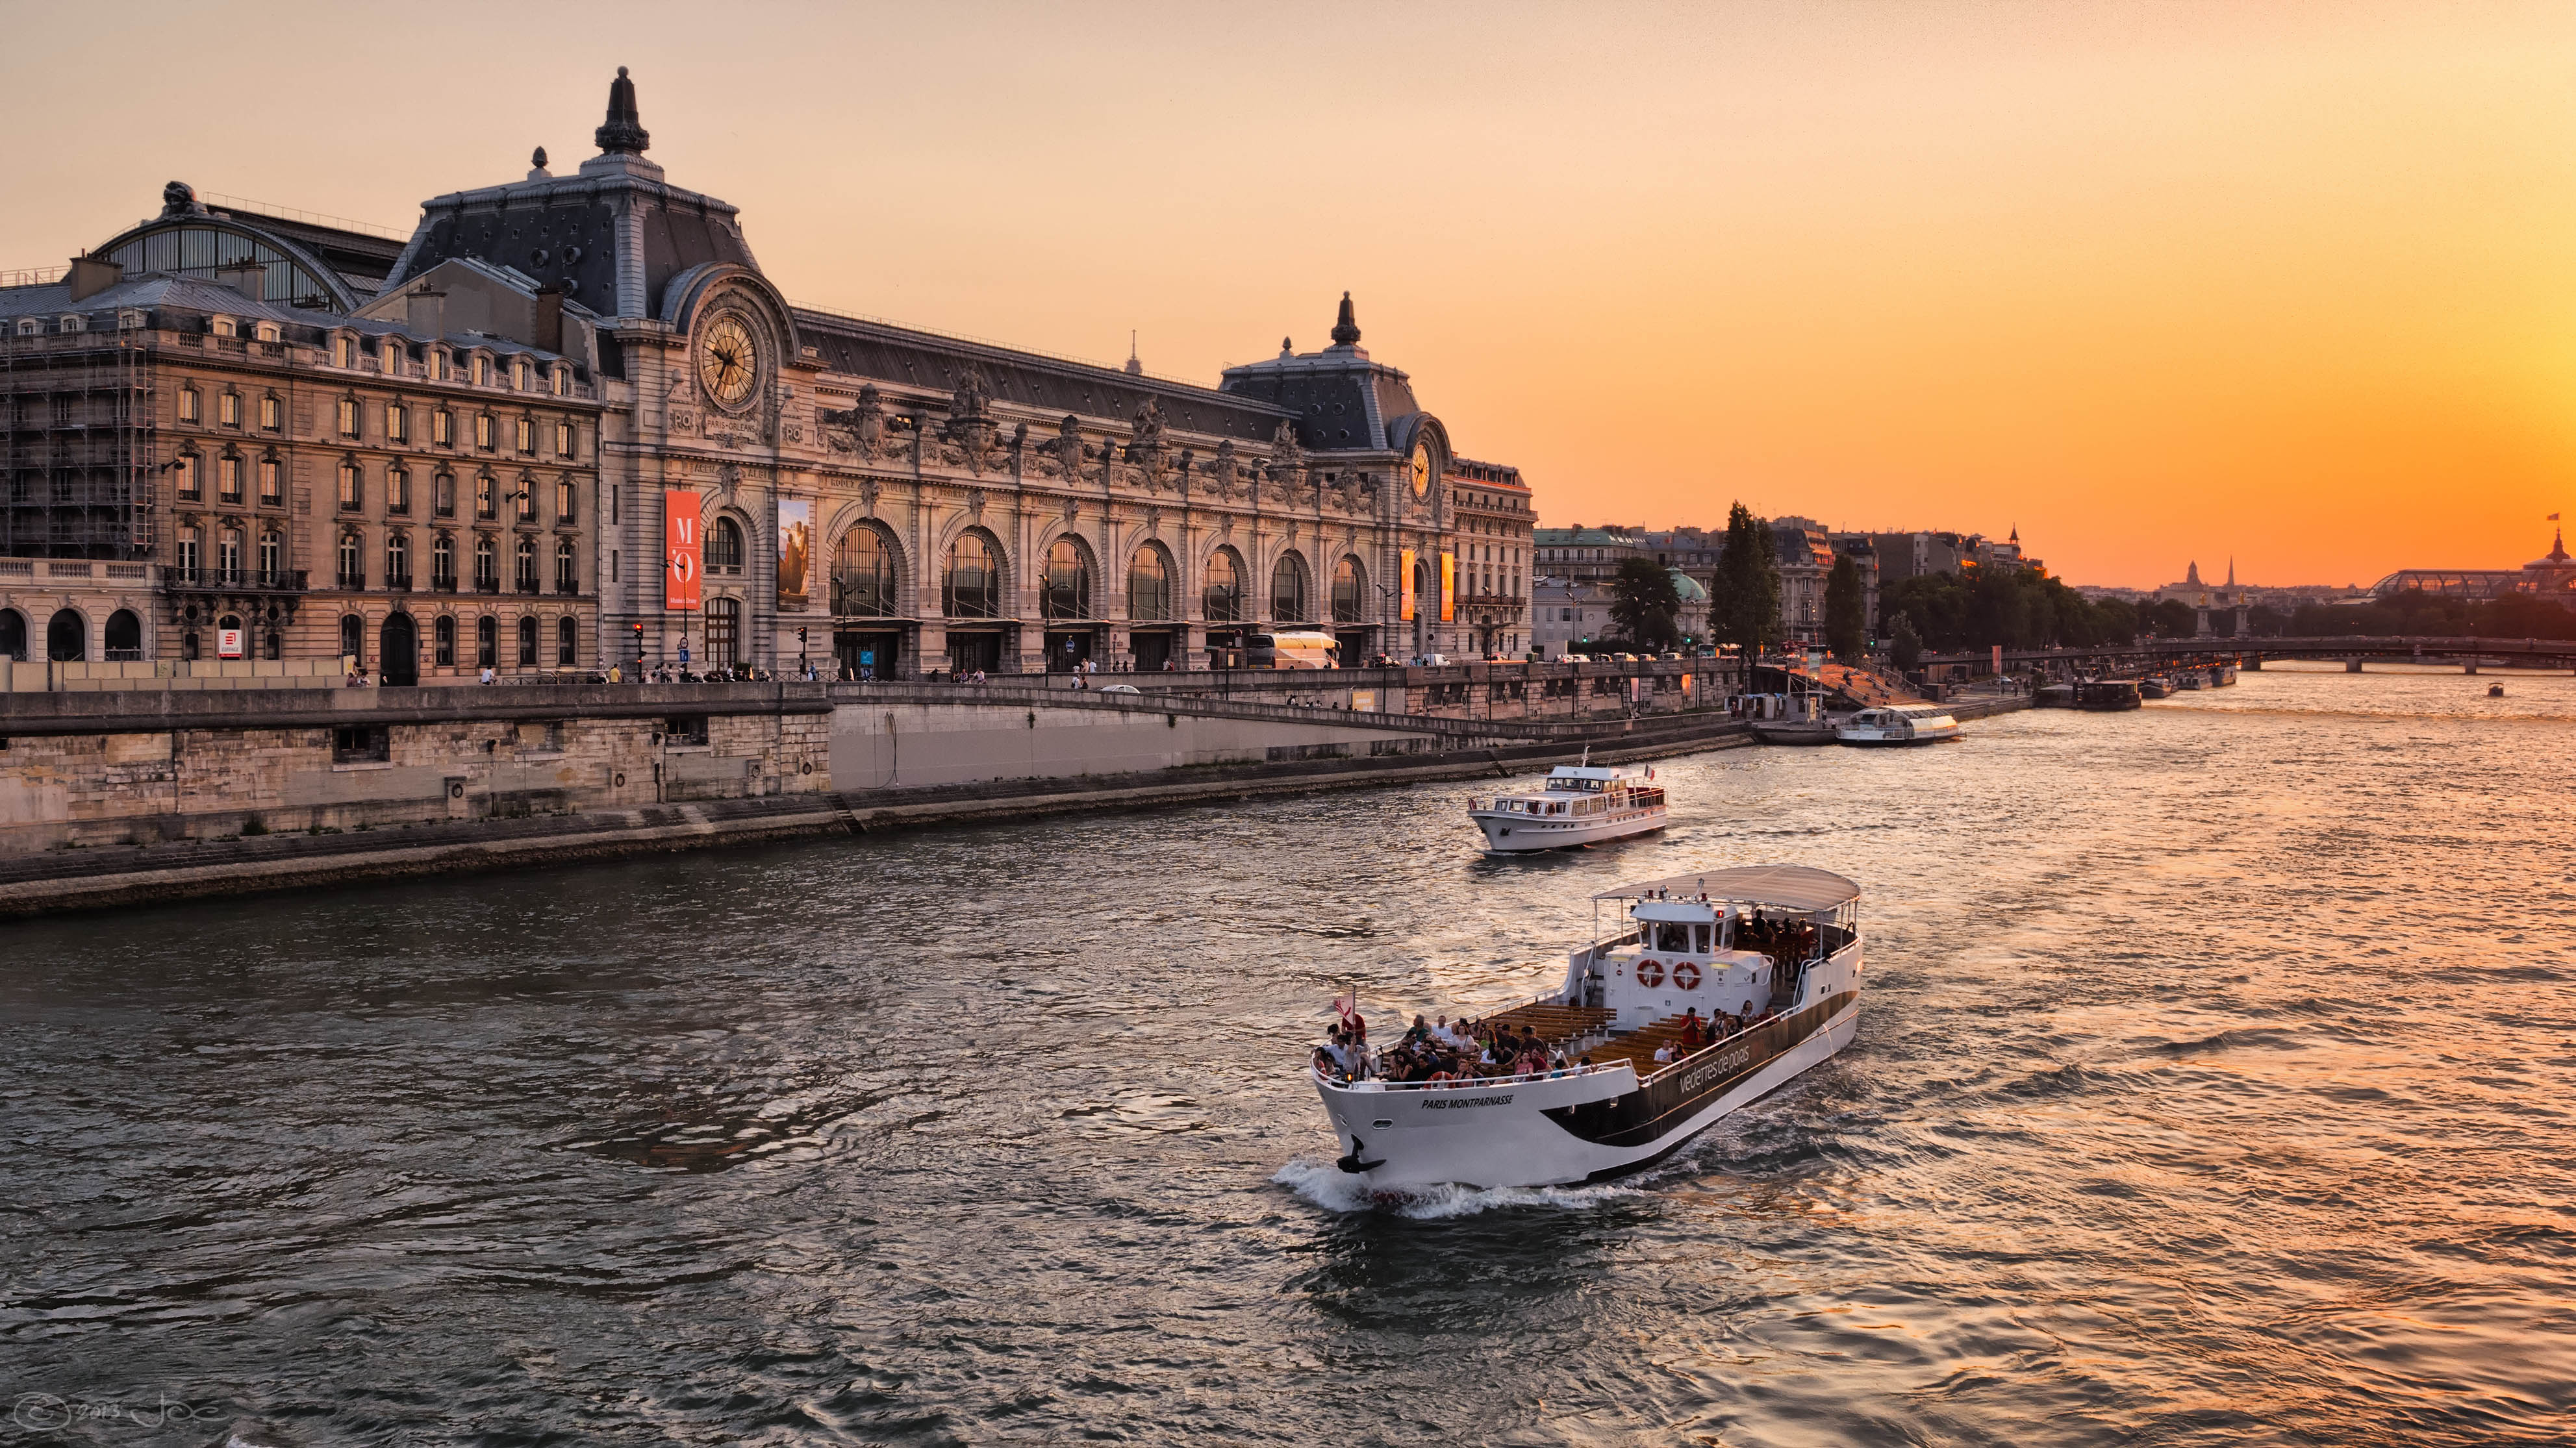 The musée d'orsay at sunset photo